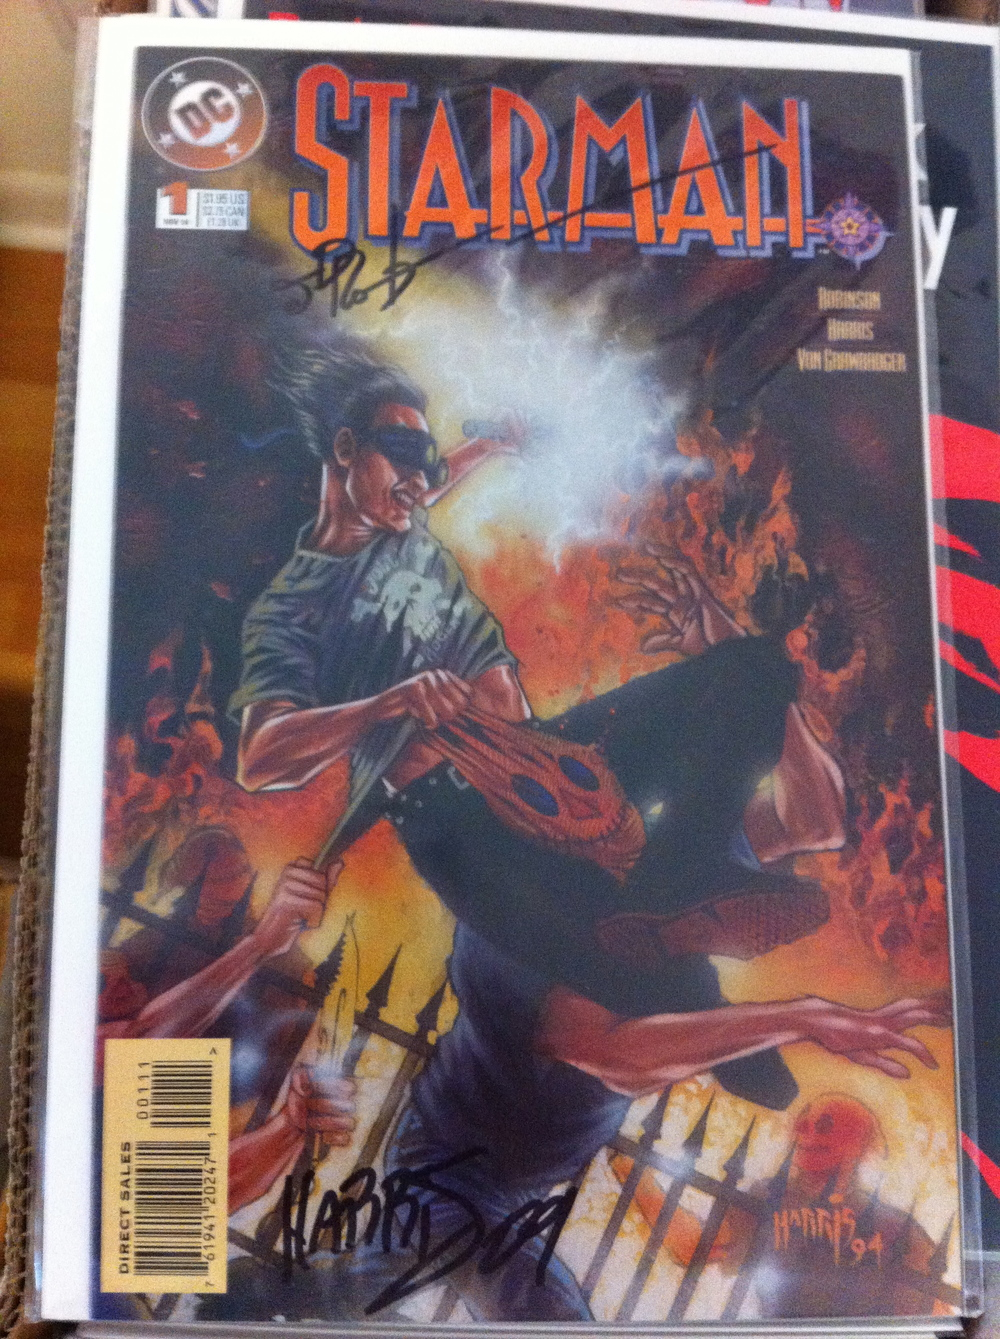 STARMAN #1-81 + Annuals, Secret Files, #0, 1 Million 80 Page Giant A series about a reluctant hero who is a pop culture collector/seller. A great series with autographed issues by James Robinson, TOny Harris, Mike Mayhew, Lee Weeks and Richard Pace.